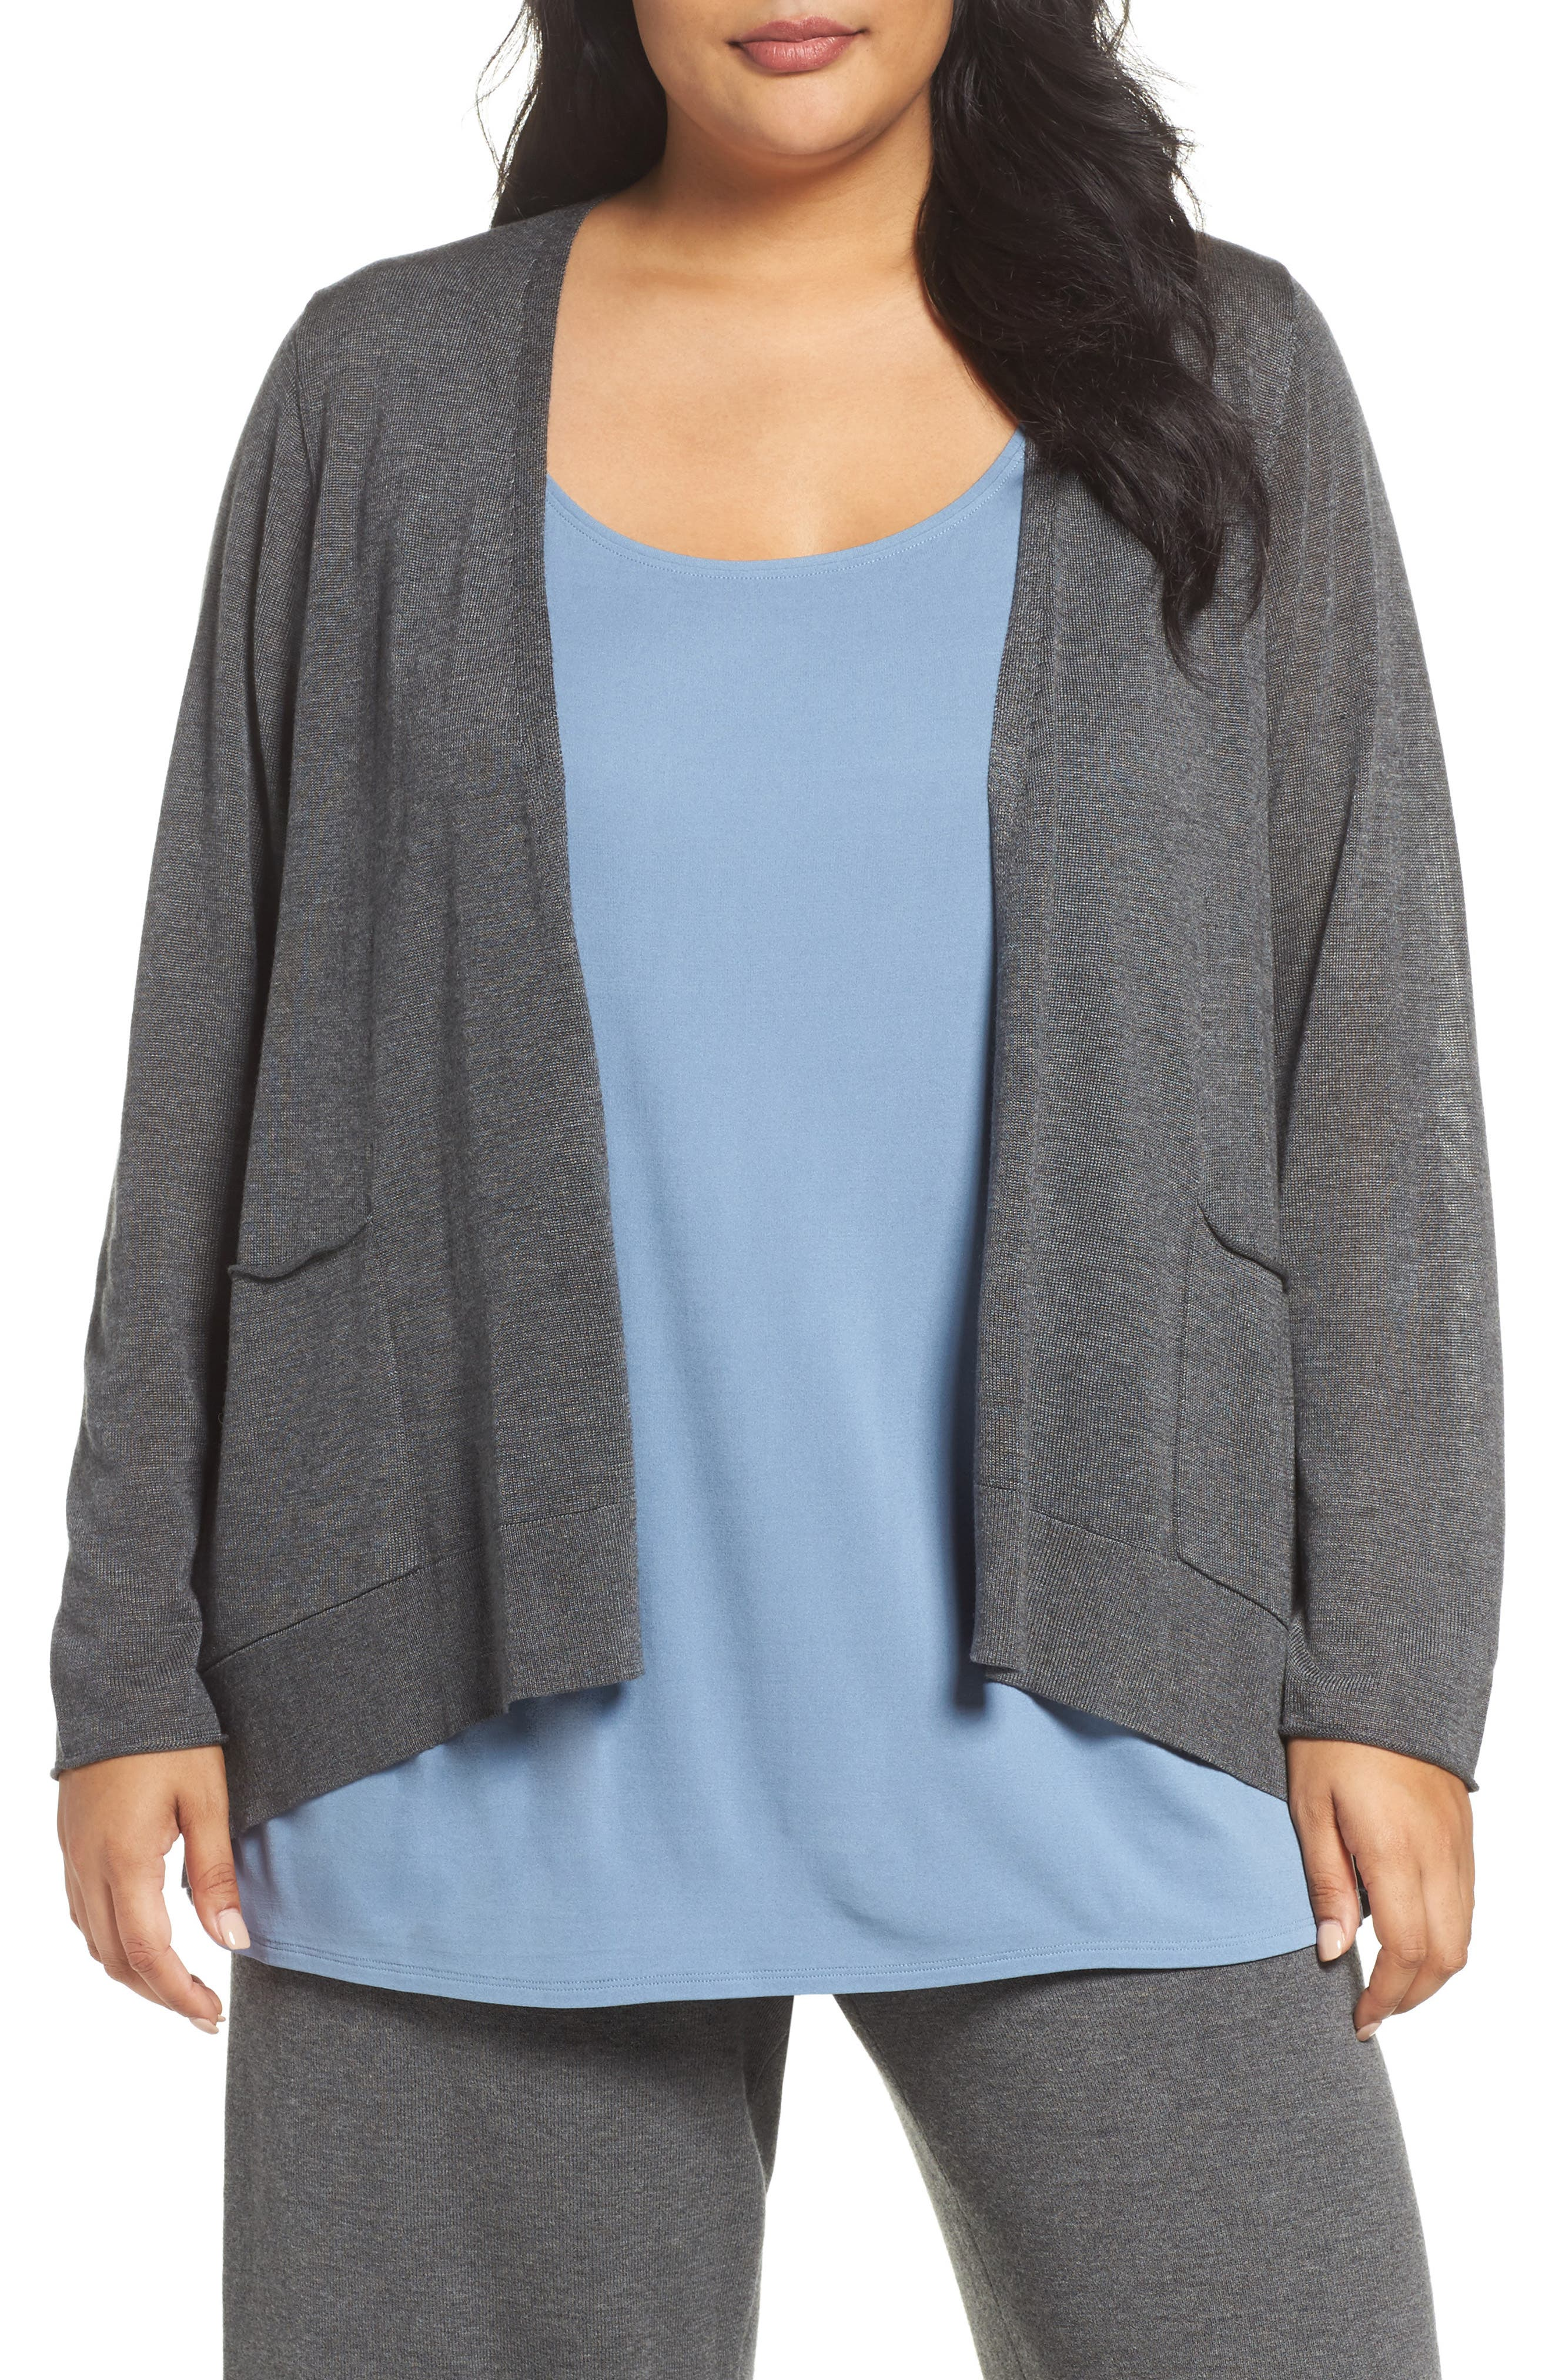 Alternate Image 1 Selected - Eileen Fisher Slouchy Tencel® Blend Cardigan (Plus Size)